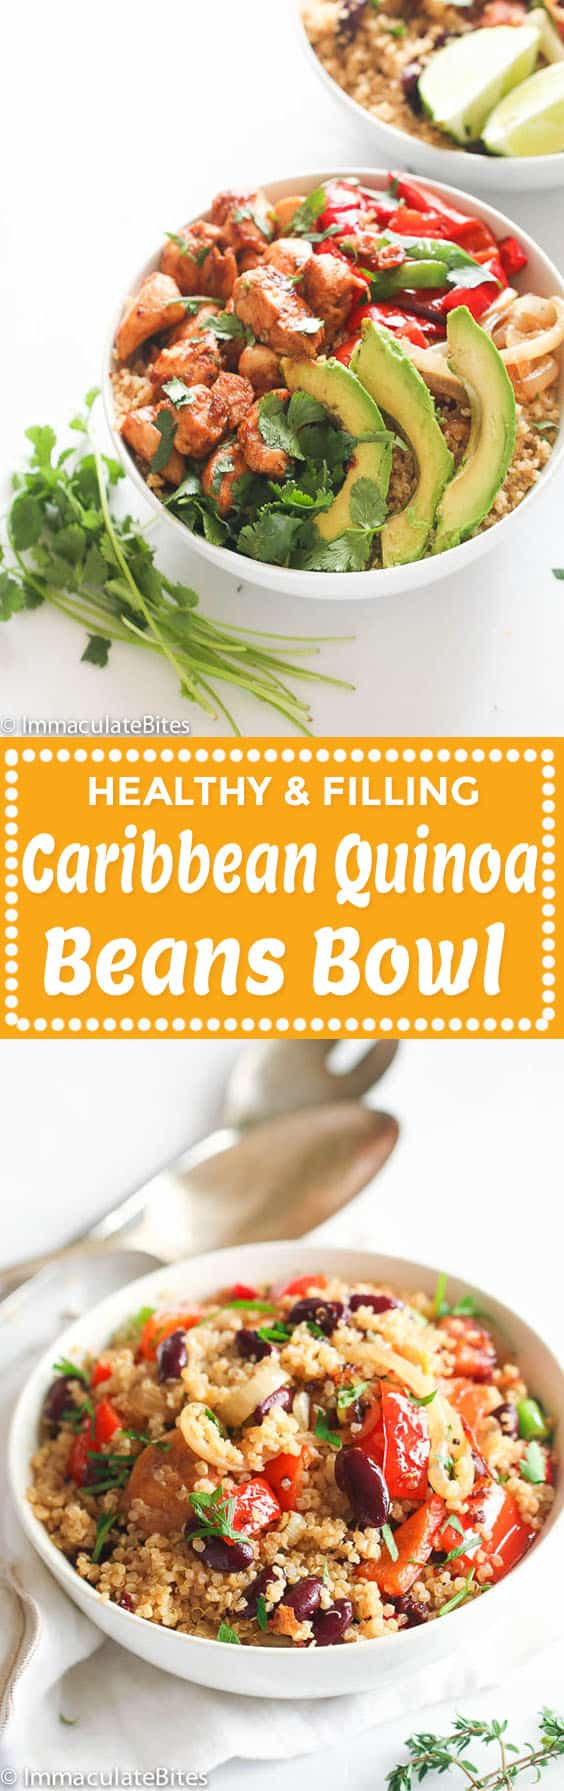 Caribbean Quinoa and Beans Bowl